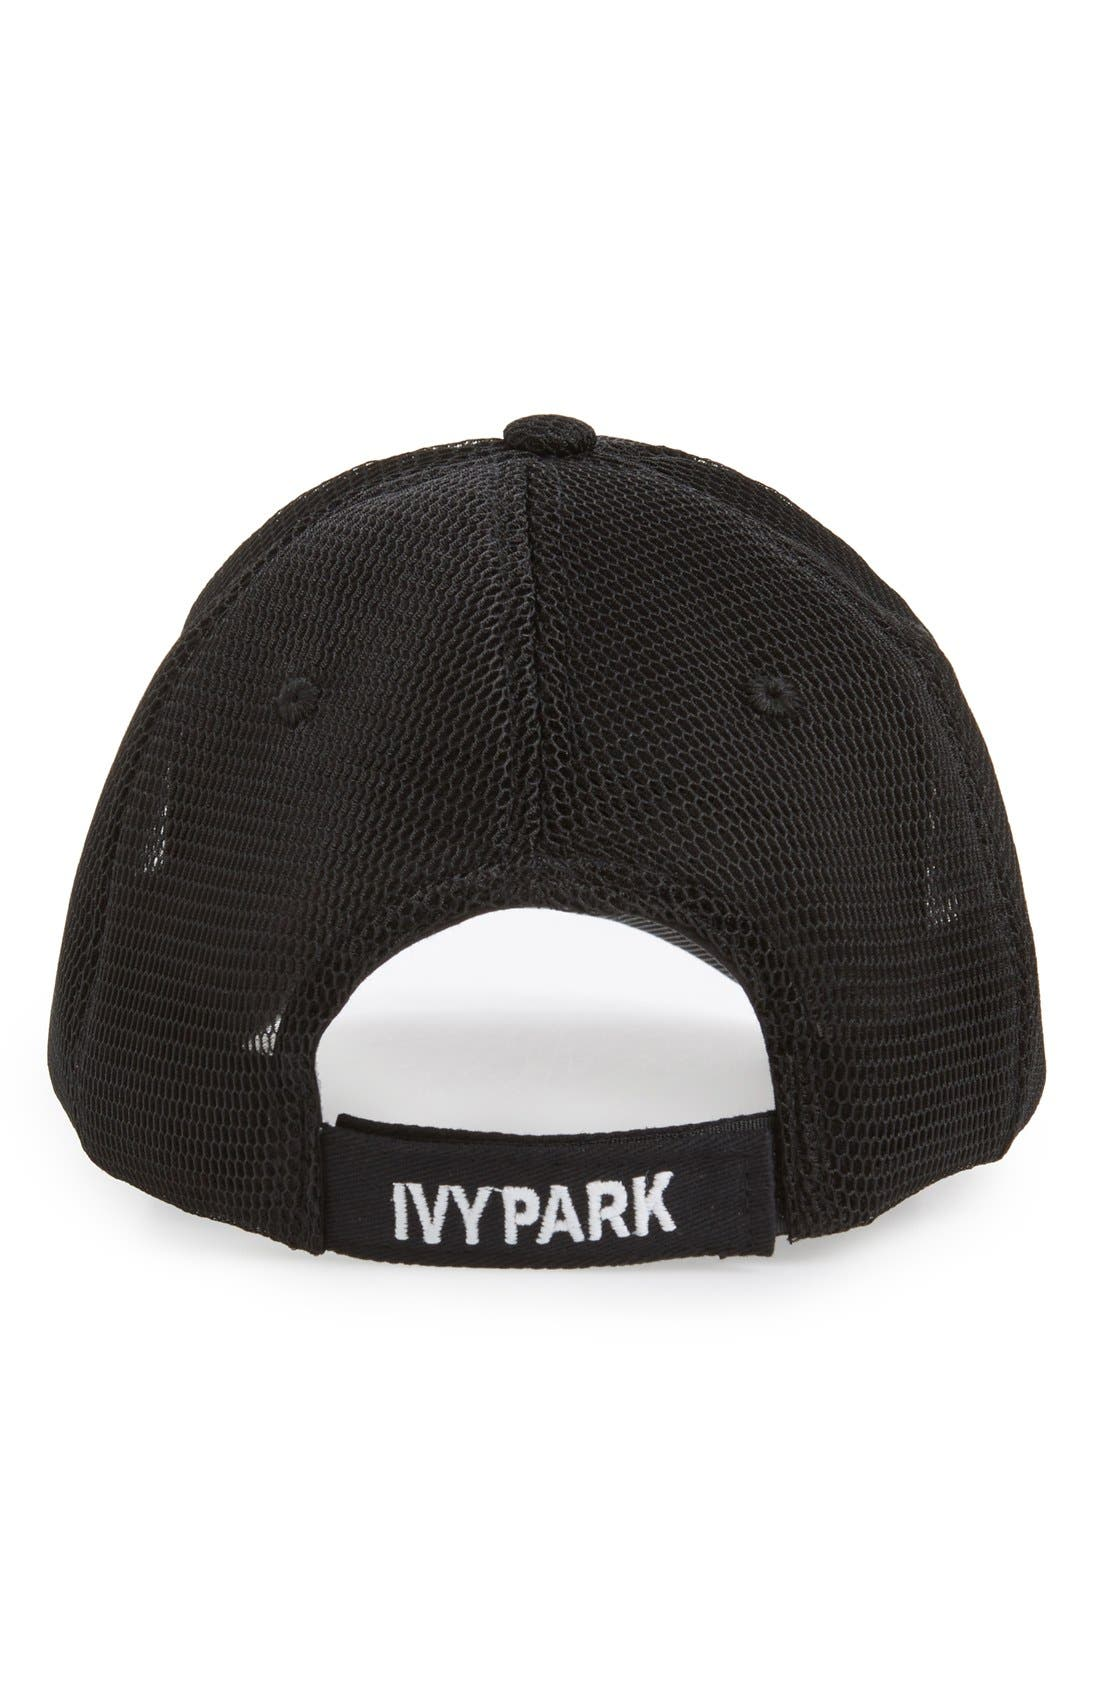 Airtex Mesh Baseball Cap,                             Alternate thumbnail 2, color,